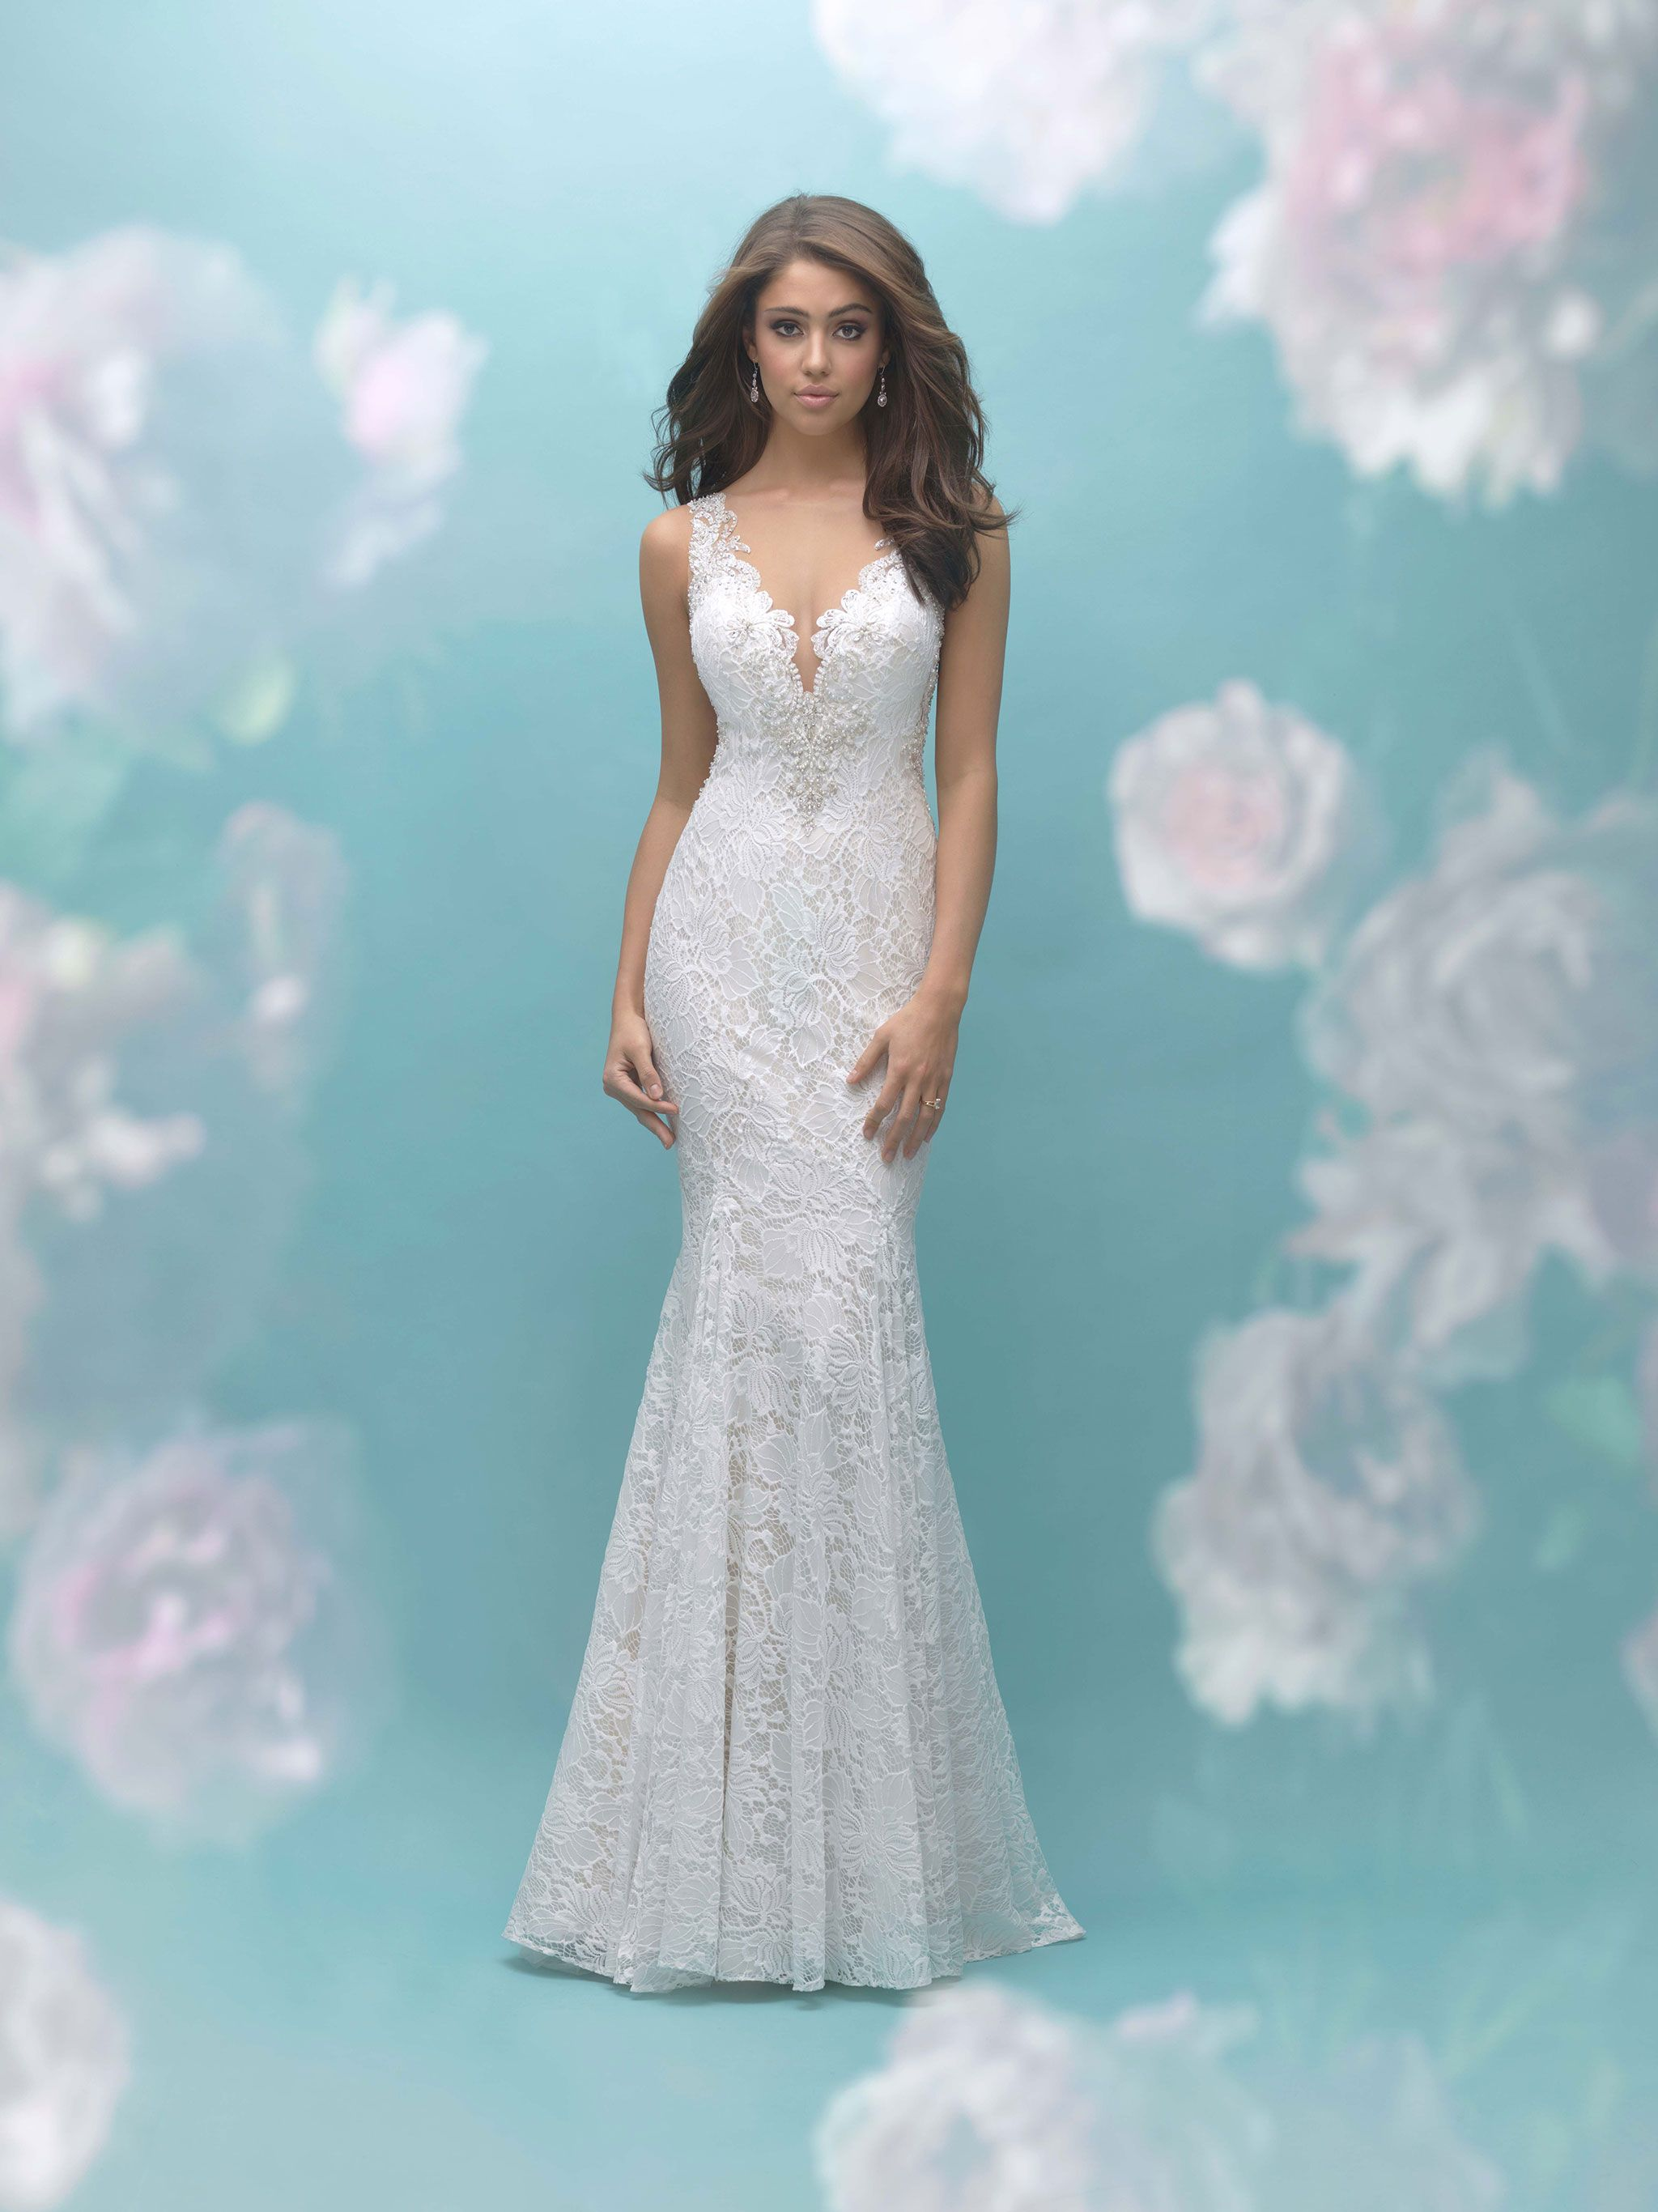 Elegant Shop Nikki us for a great selection of Allure Bridal gowns u dresses in Tampa Fl Allure Bridals Allure Bridal Collection Nikki us offers the largest